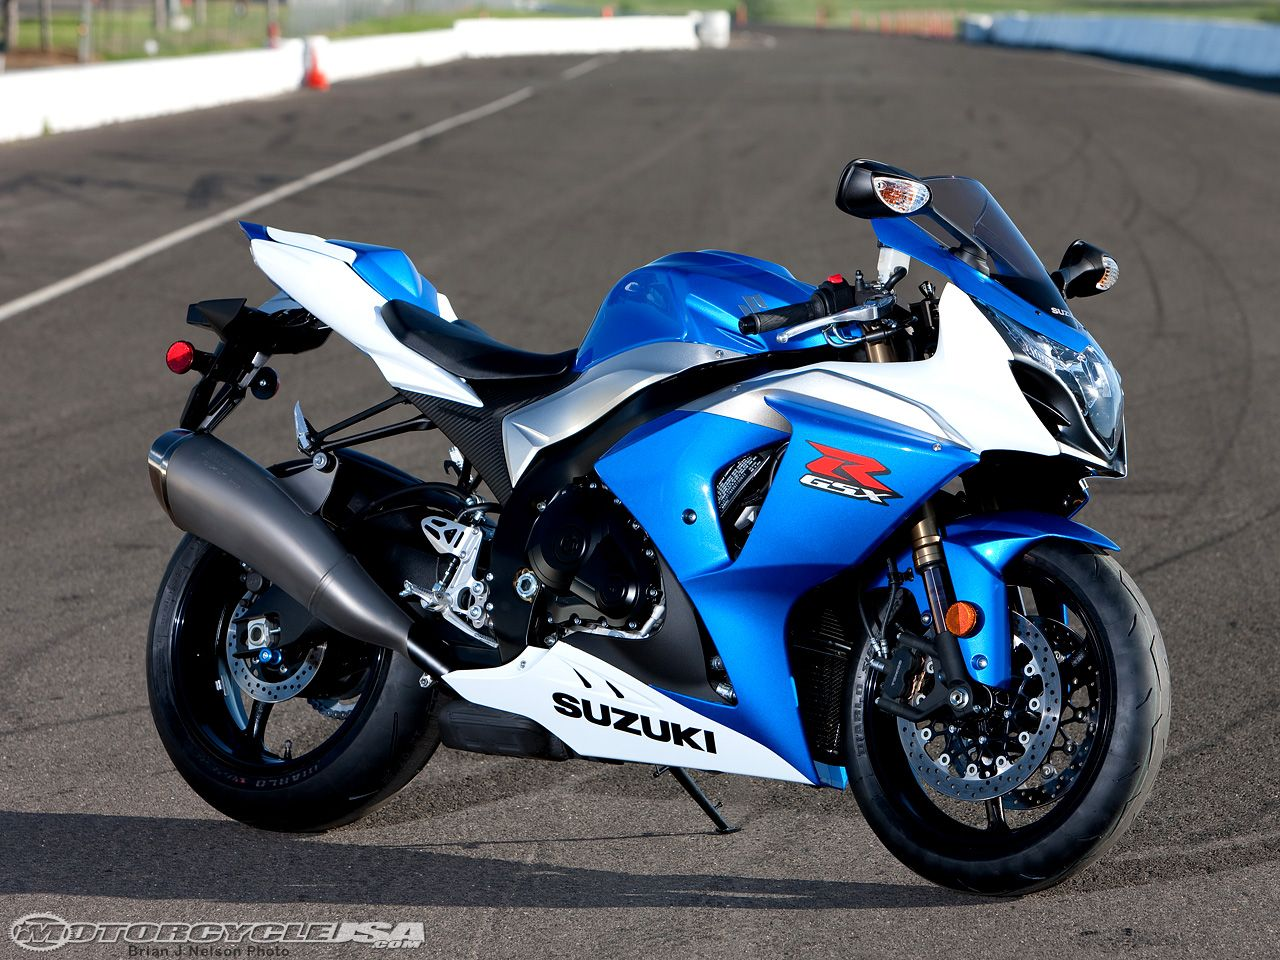 2009 suzuki gsx r1000 smackdown track test motorcycles. Black Bedroom Furniture Sets. Home Design Ideas